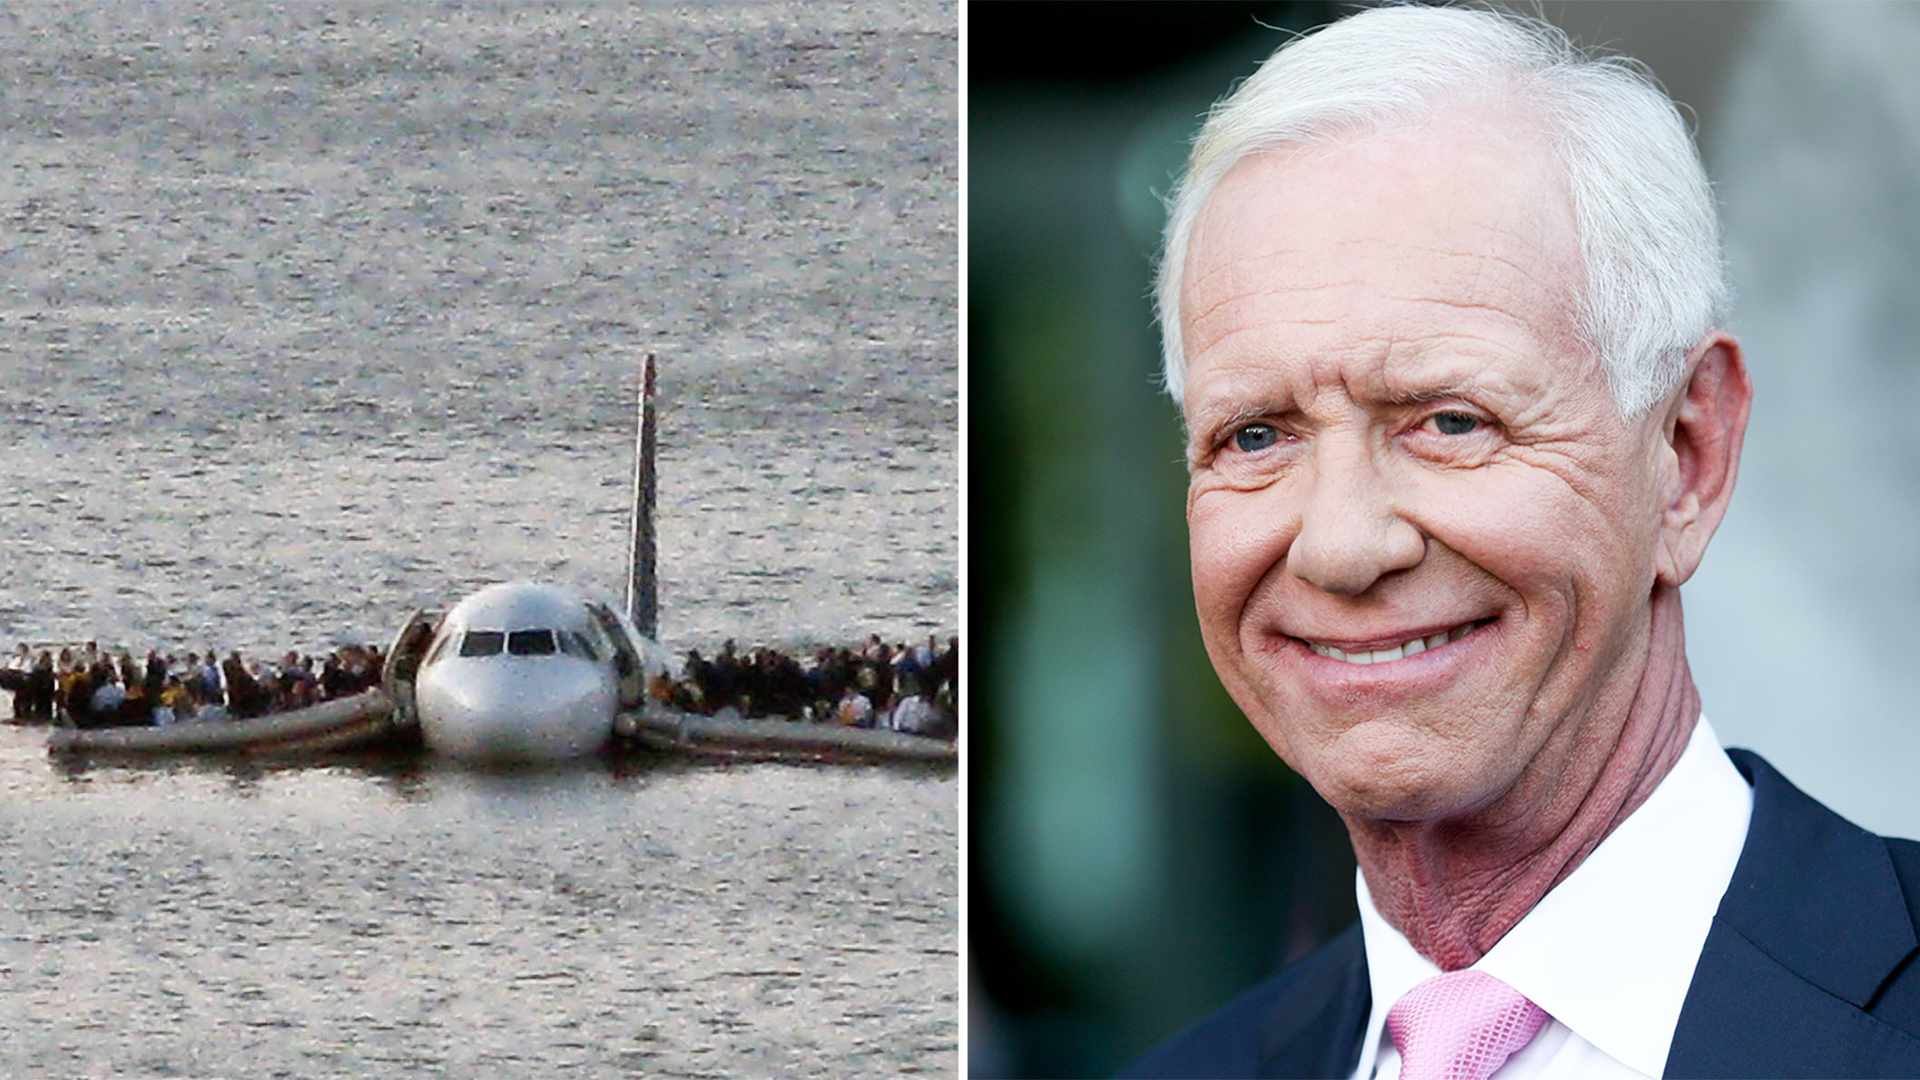 pilot plane hudson river landing with Chesley Sully Sullenberger Hero My Family He S More T102571 on New York Miracle On The Hudson Survivors Mark 5 Years also Inside Miracle Hudson Never Seen Photo Shows Captain Sully S Cockpit Saved 155 Lives moreover Plane Crashes In Hudson River furthermore Darling Ive Just Accident The Amazing Calm Airline Pilot Landed Hudson River as well Clay Presley Miracle Hudson Survivor Over es Fear Flying Pilot.